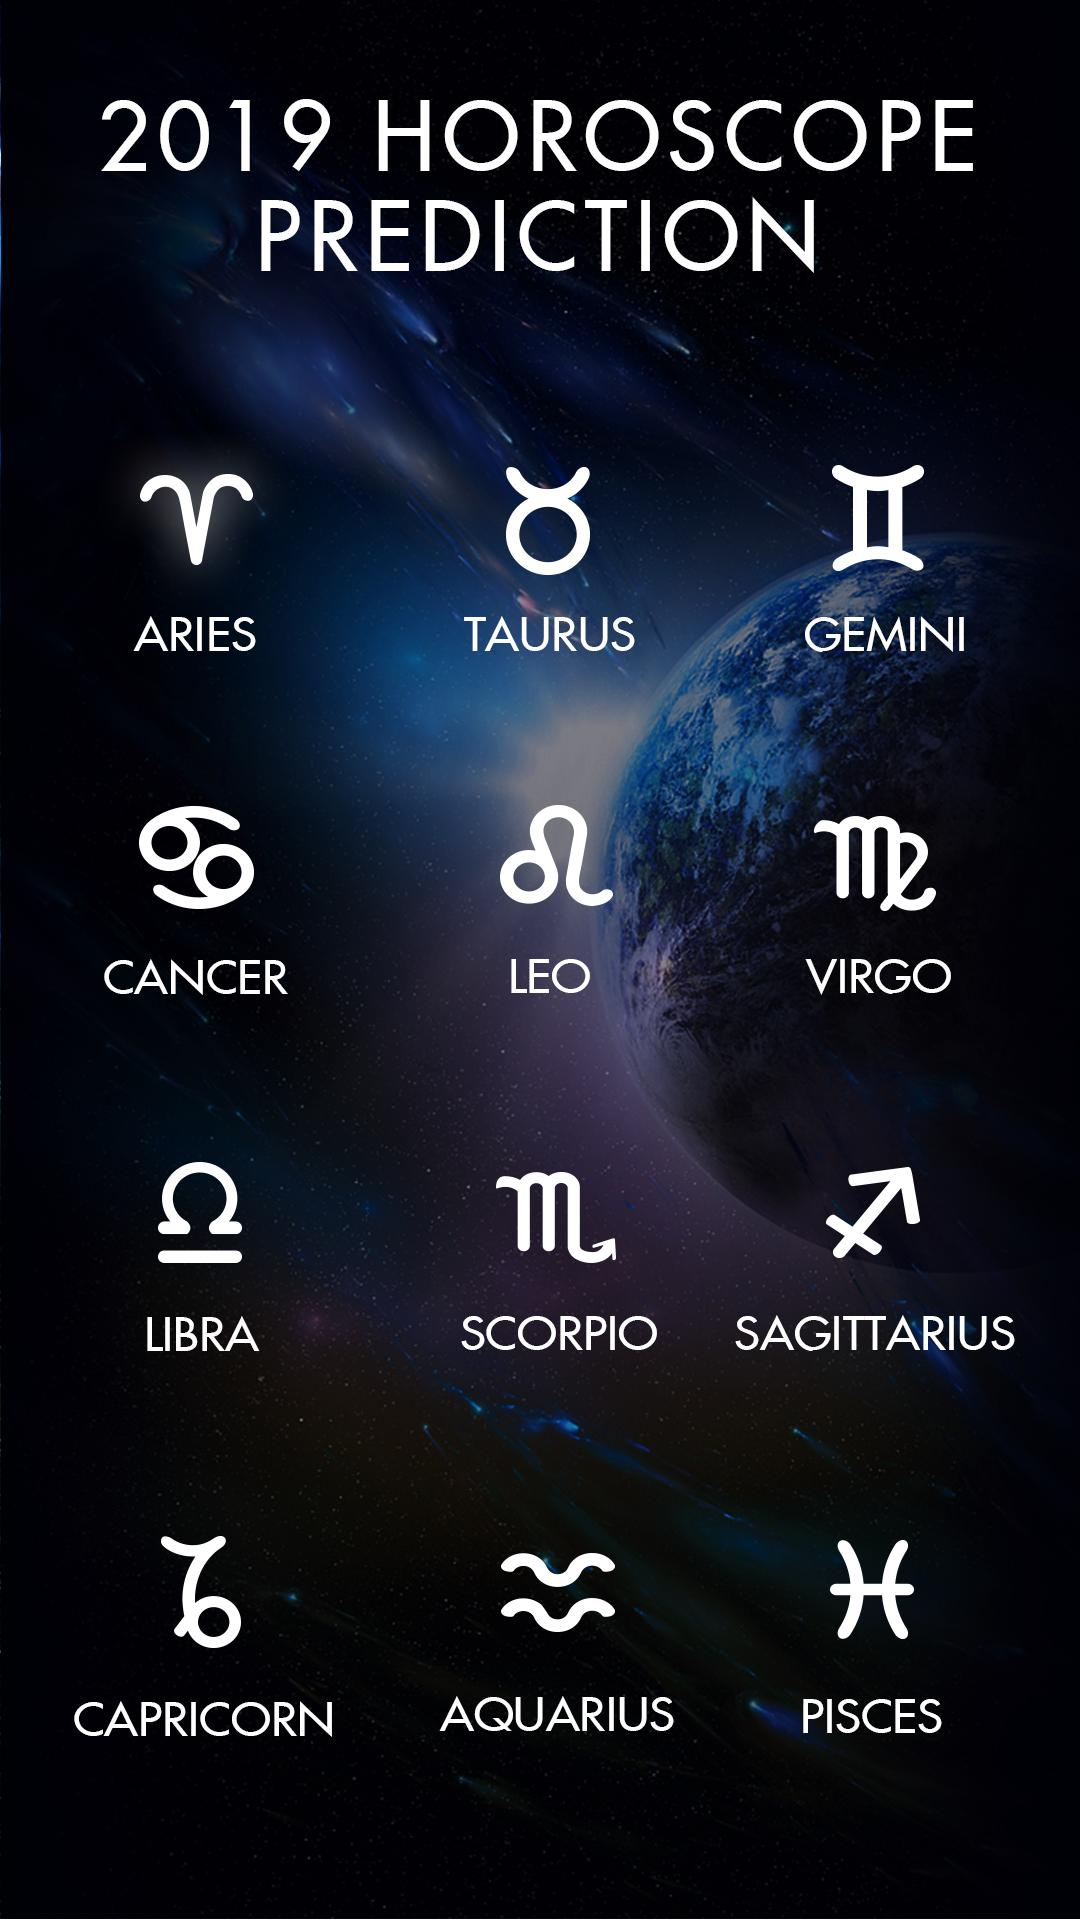 Daily Horoscope Plus ® - Zodiac Sign and Astrology for